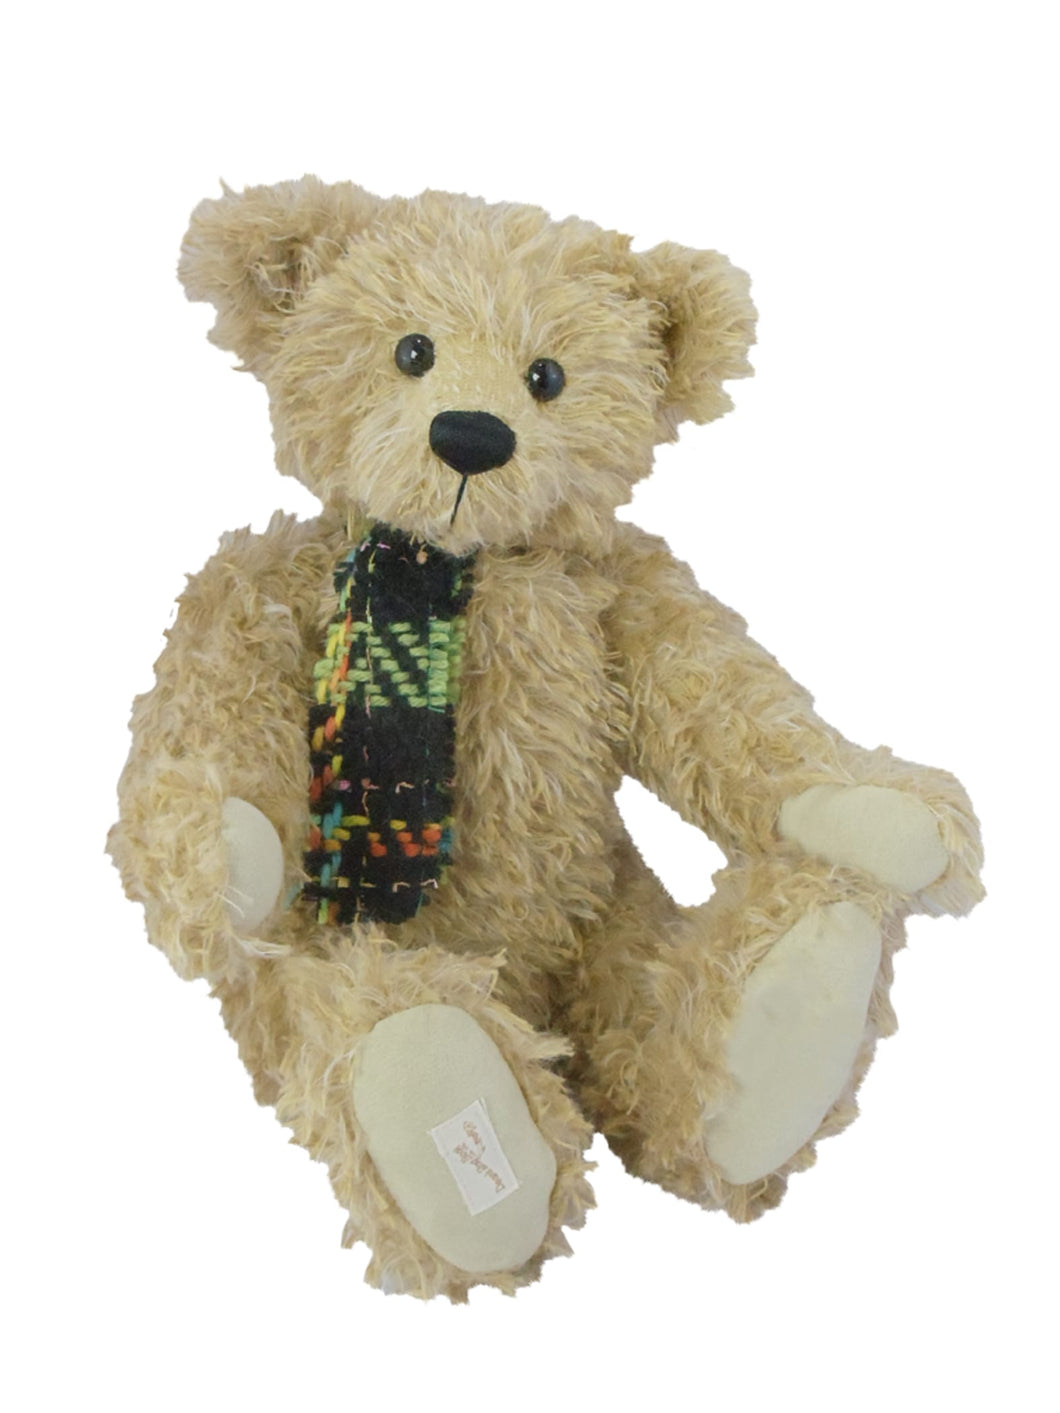 TEDDY JULIAN / DEAN'S MOHAIR LIMITED BEAR